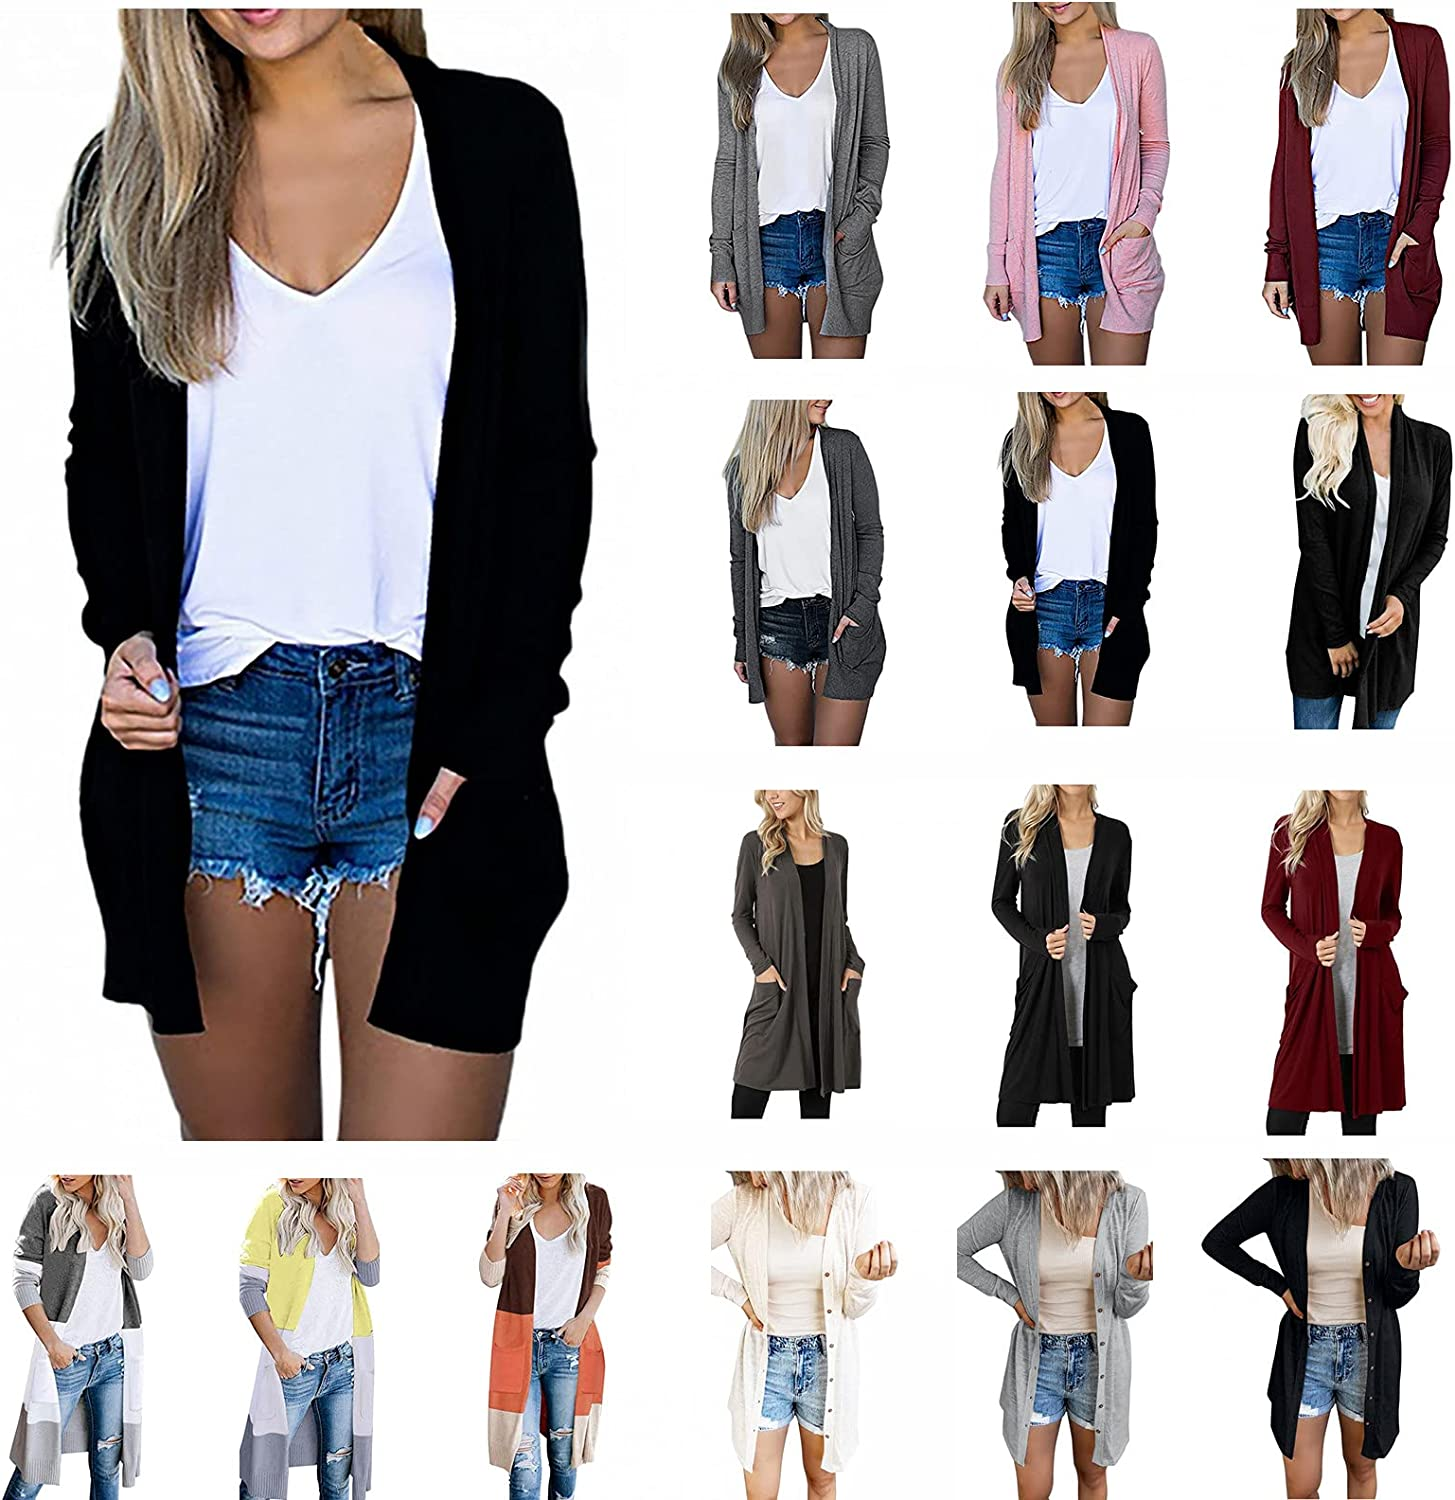 DOYIMBO Long Sleeve Cardigans for Womens Fall Top Coat Open-Front Cardigan Casaul Lightweight Cardigan Plus Size Tops